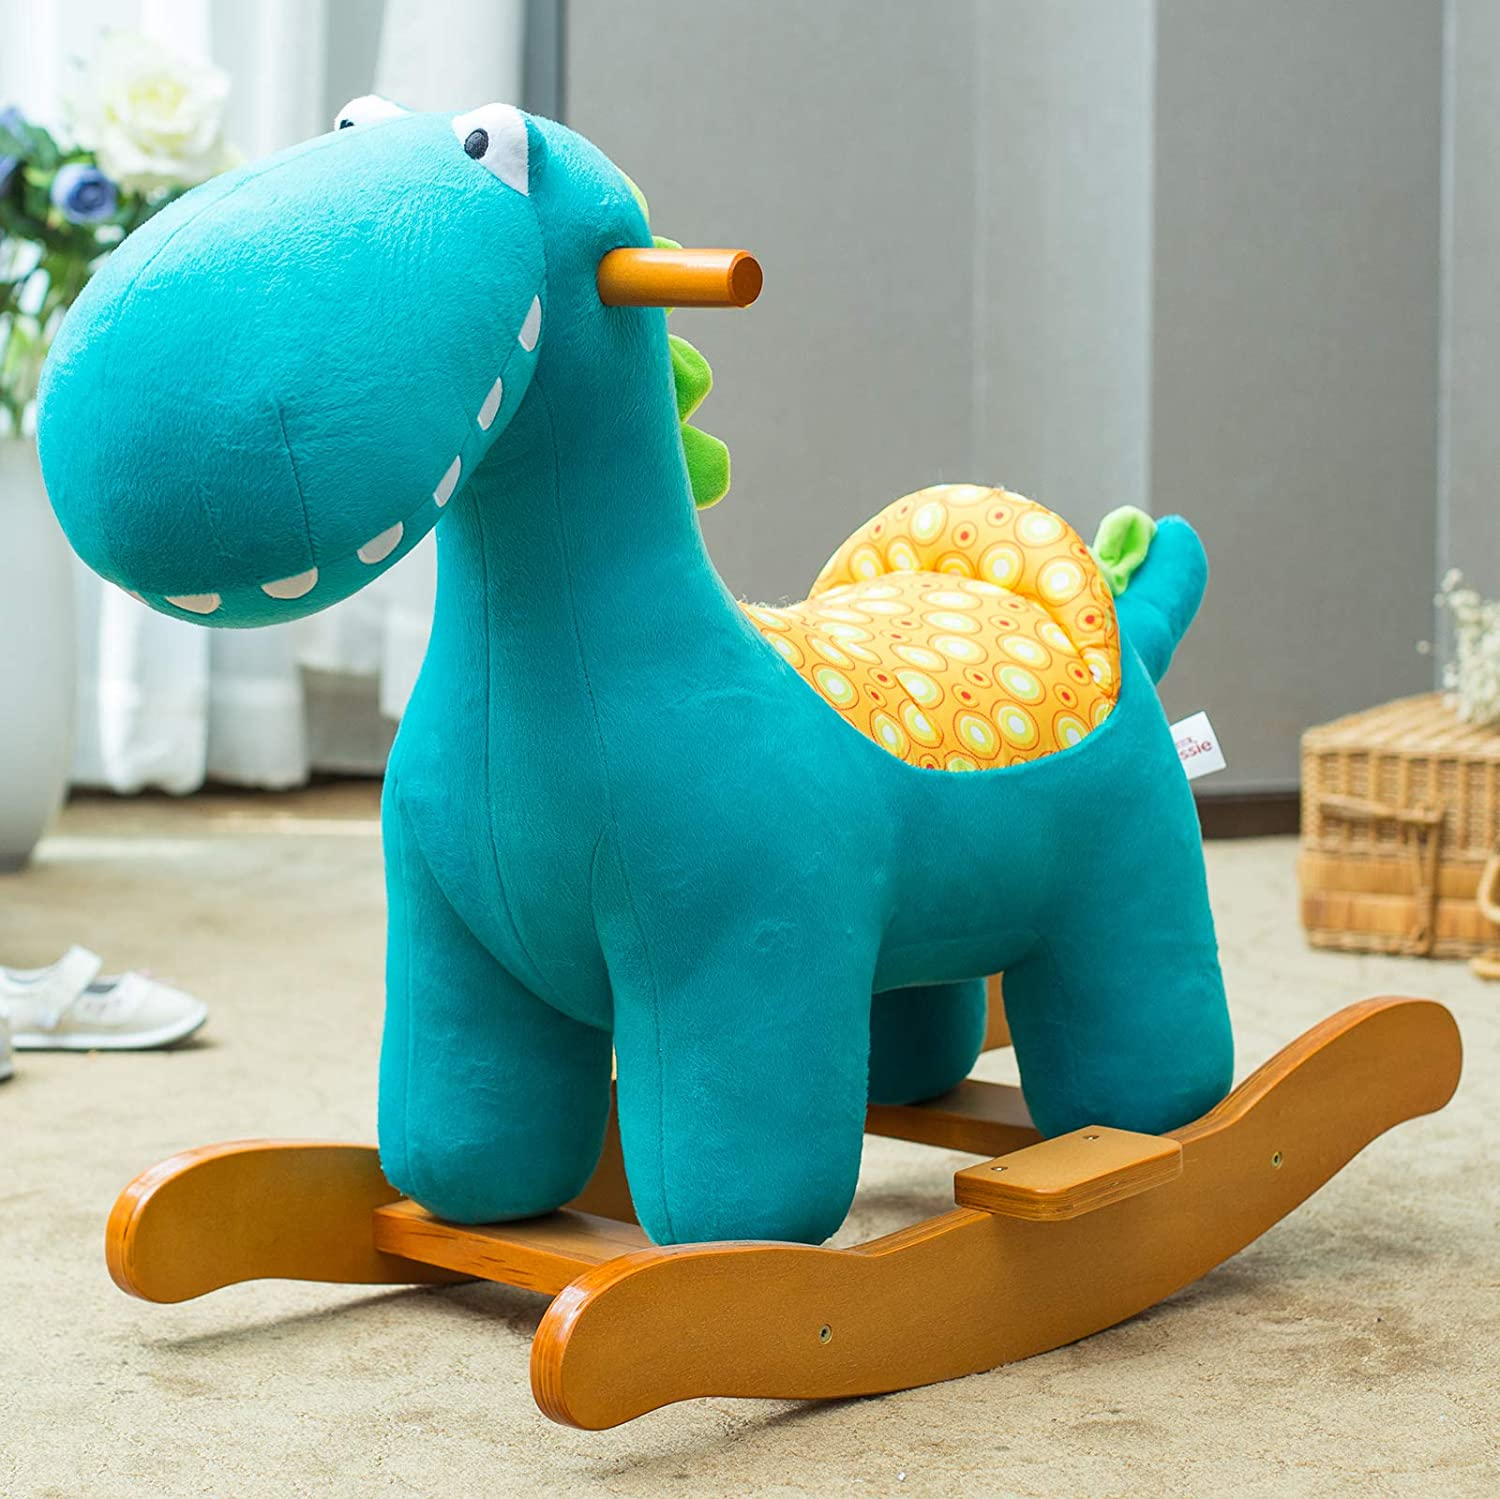 Kid Ride On Toy for 1-3 Year Old Toddler//Child Stuffed Ride Toy Blue-Infant Boy Girl Plush Animal Rocker hessie labebe Baby Rocking Horse